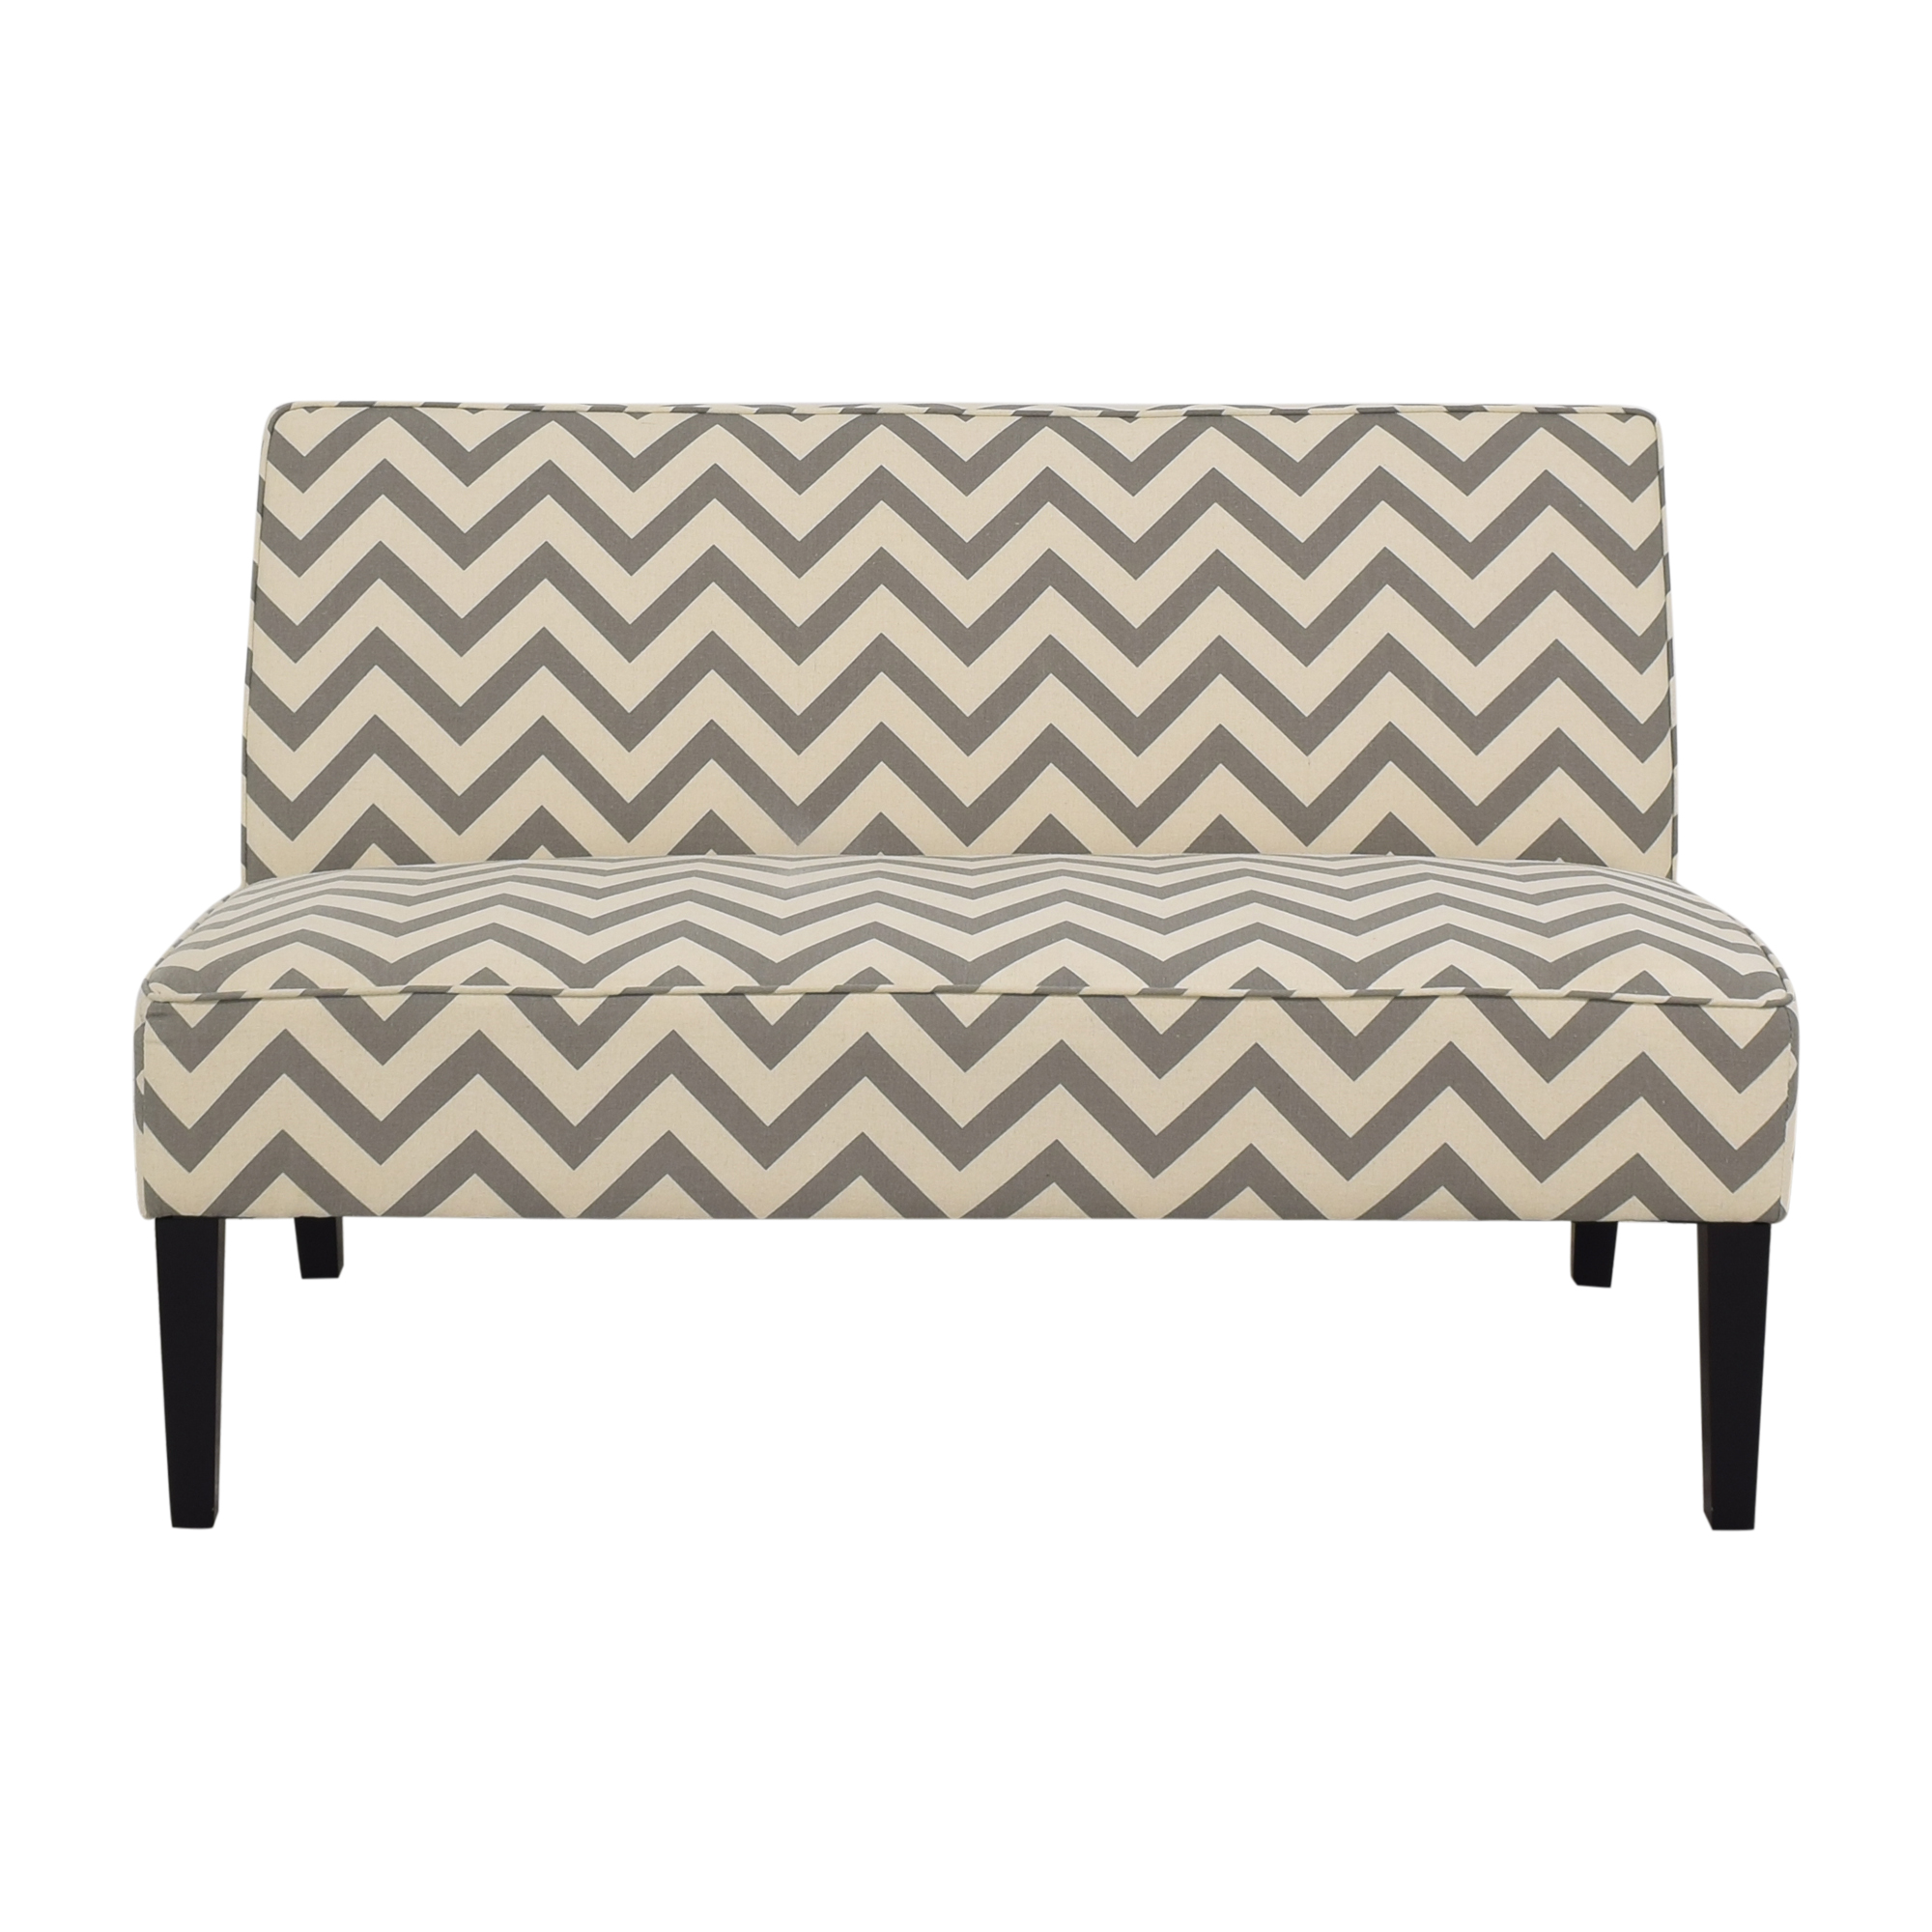 Noble House Noble House Upholstered Bench second hand